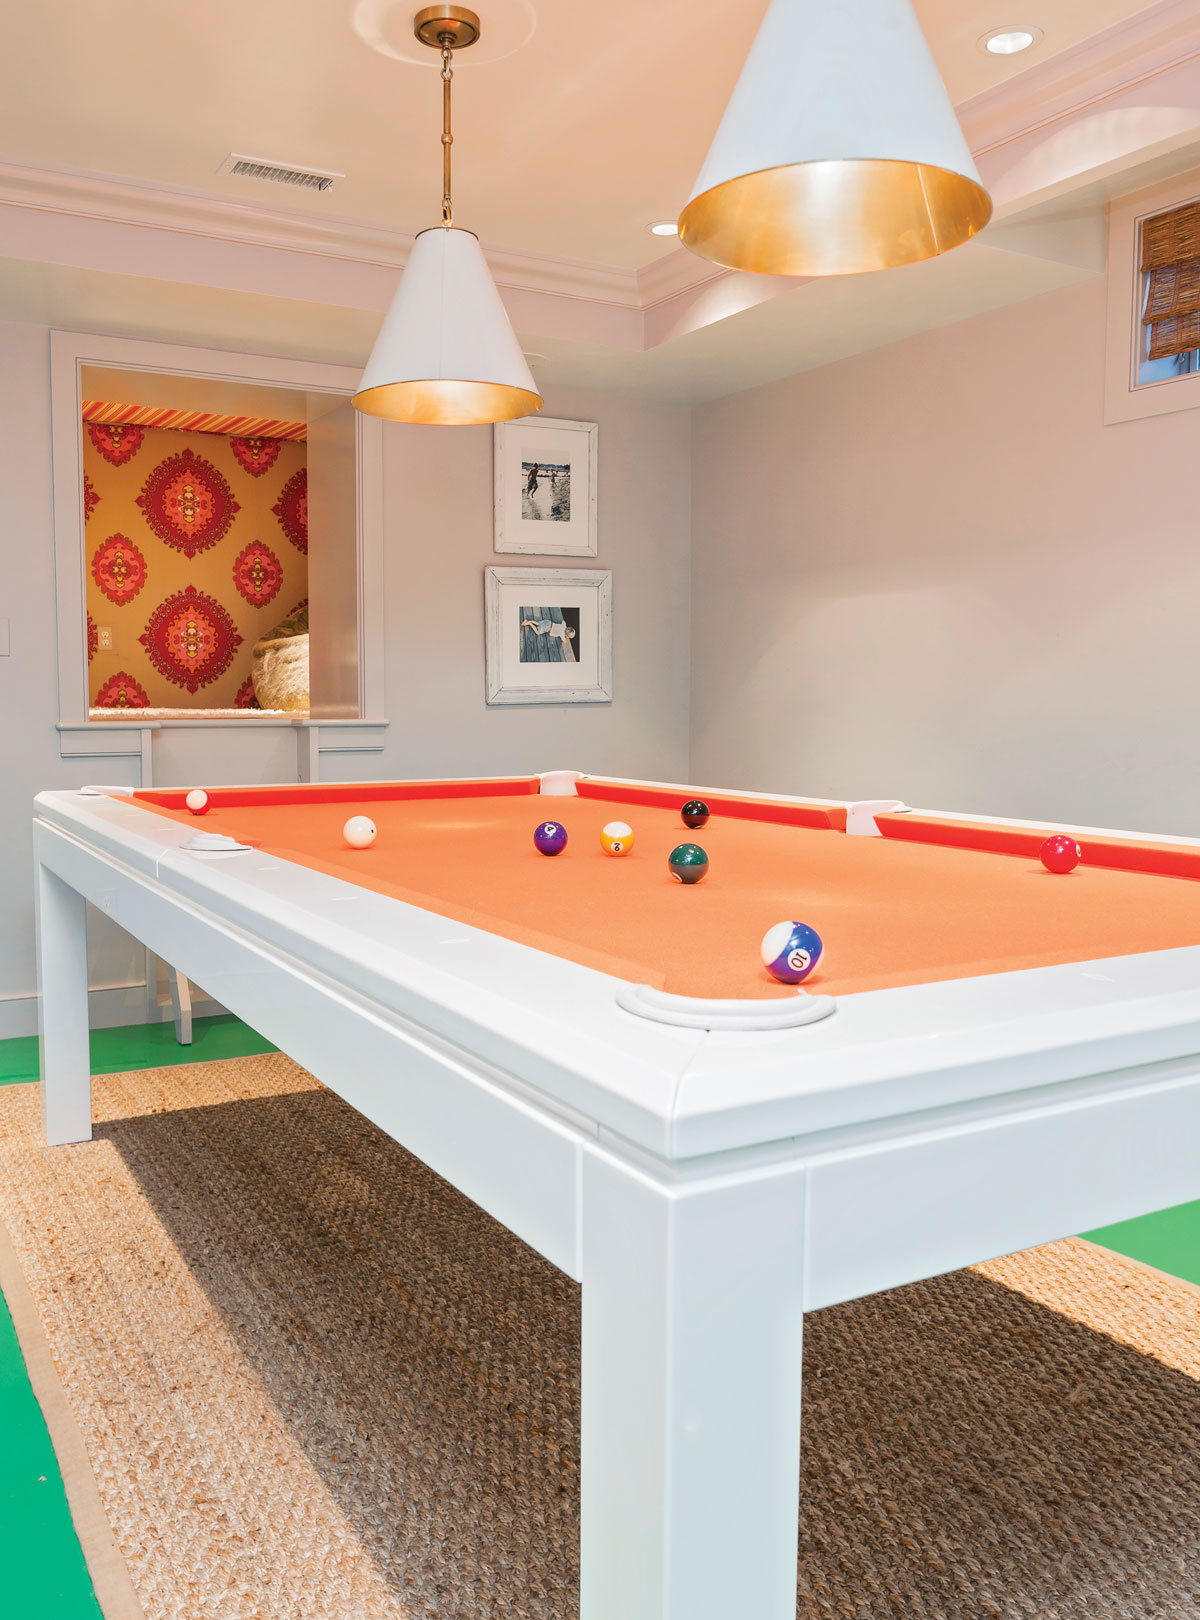 An orange lacquered pool table lives on the green epoxy floor, and a cute custom-created nook overlooks all.